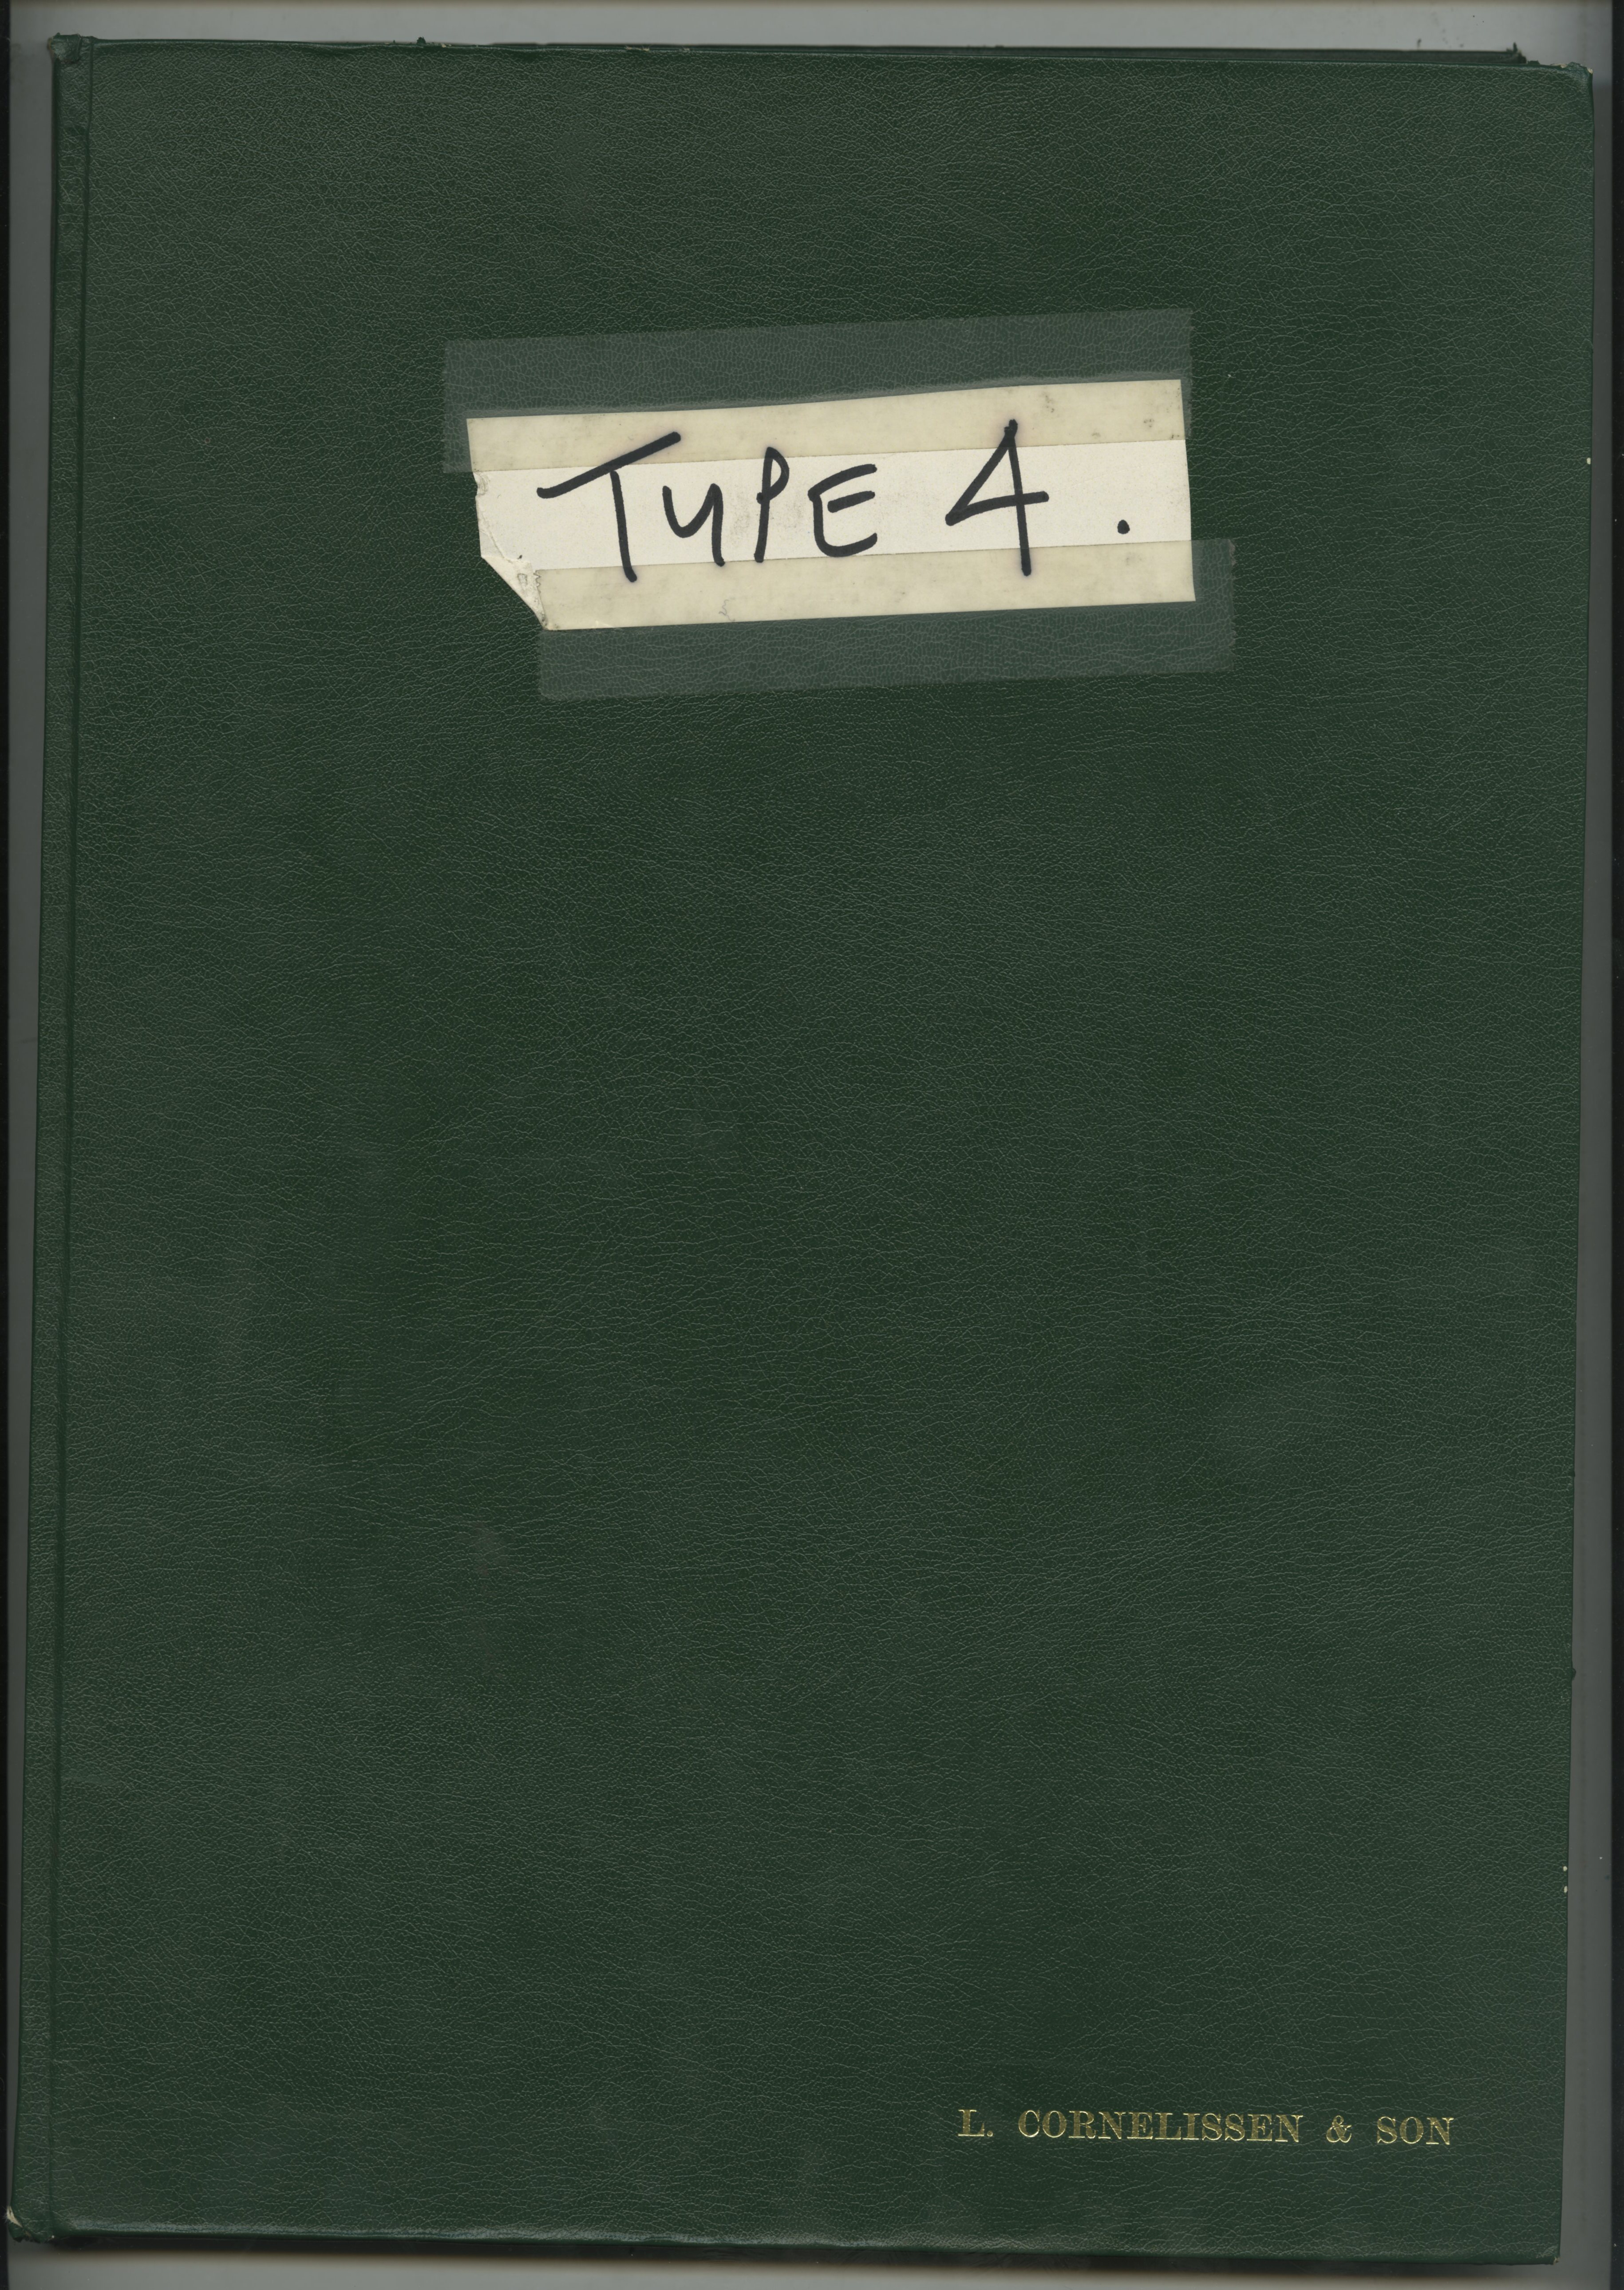 1. Green Book Type Cover